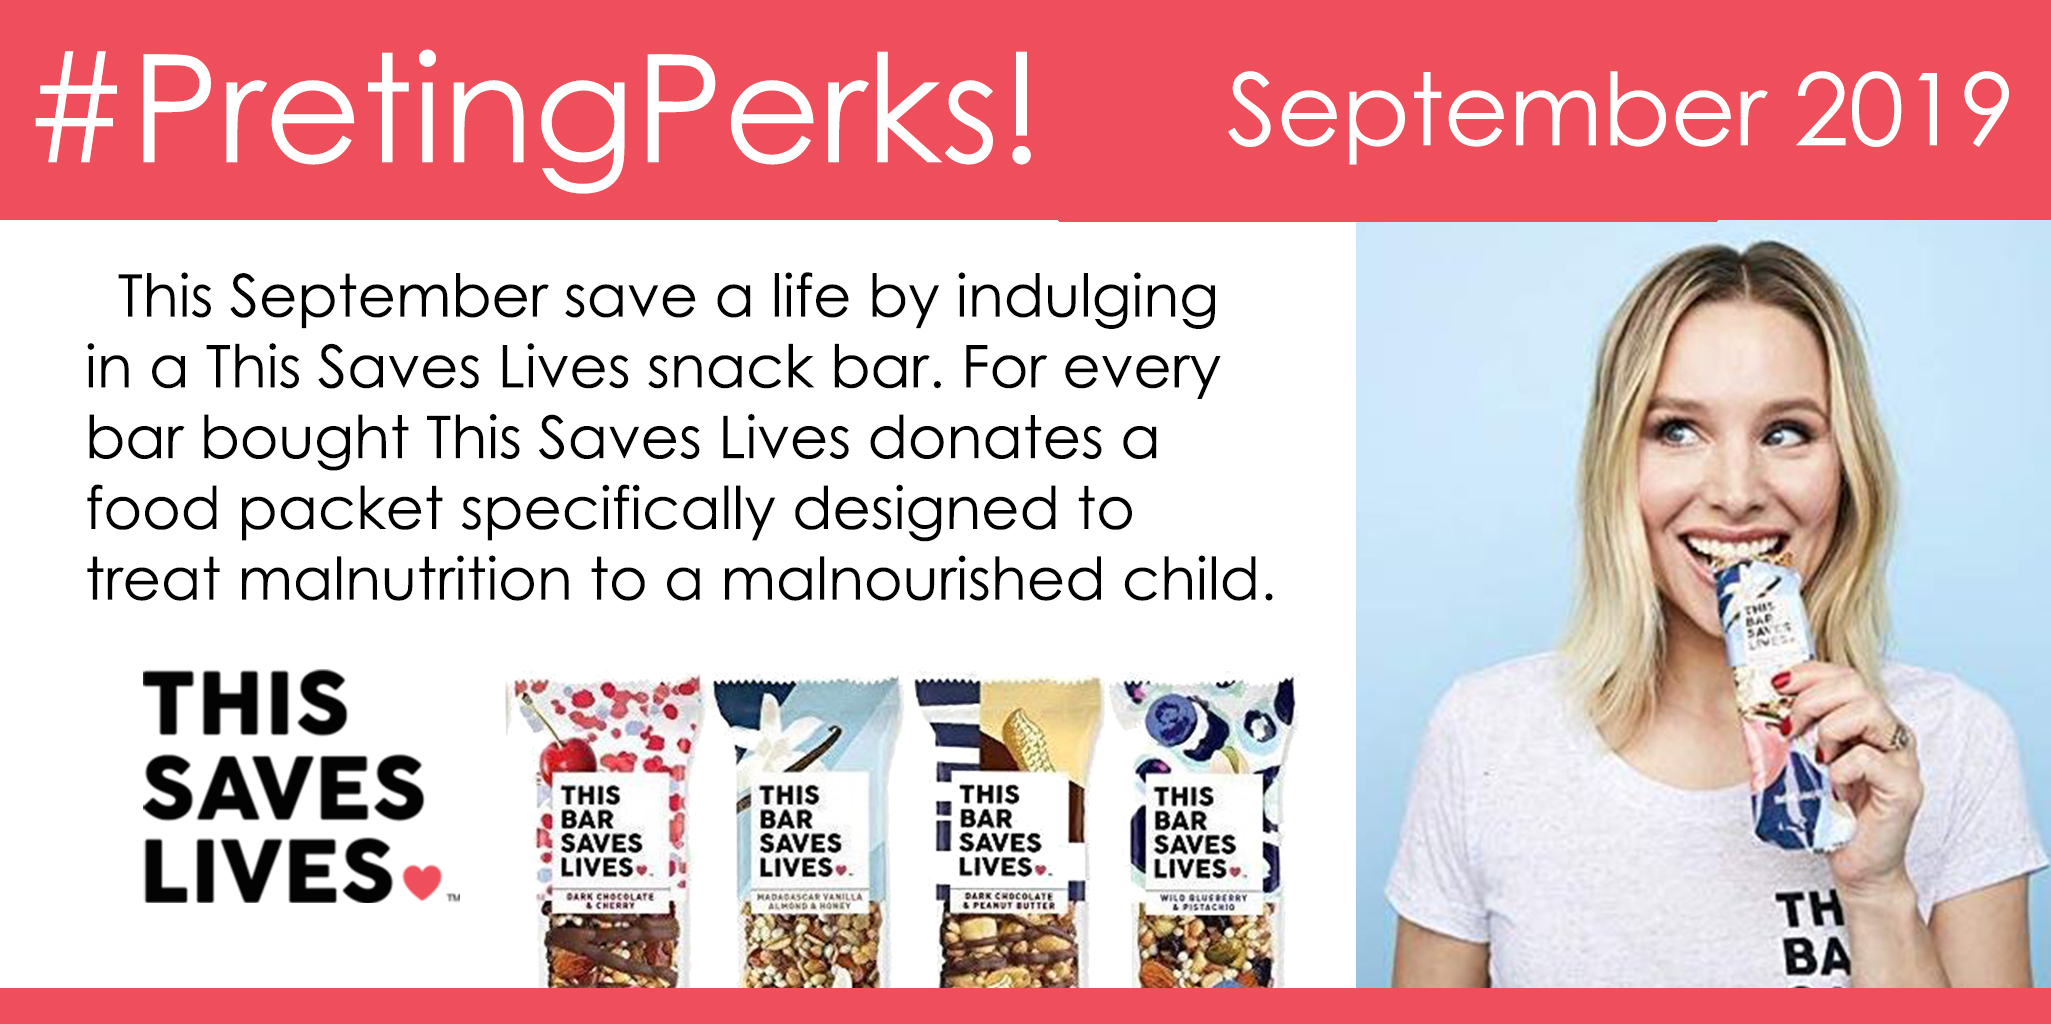 #PretingPerks! September 2019